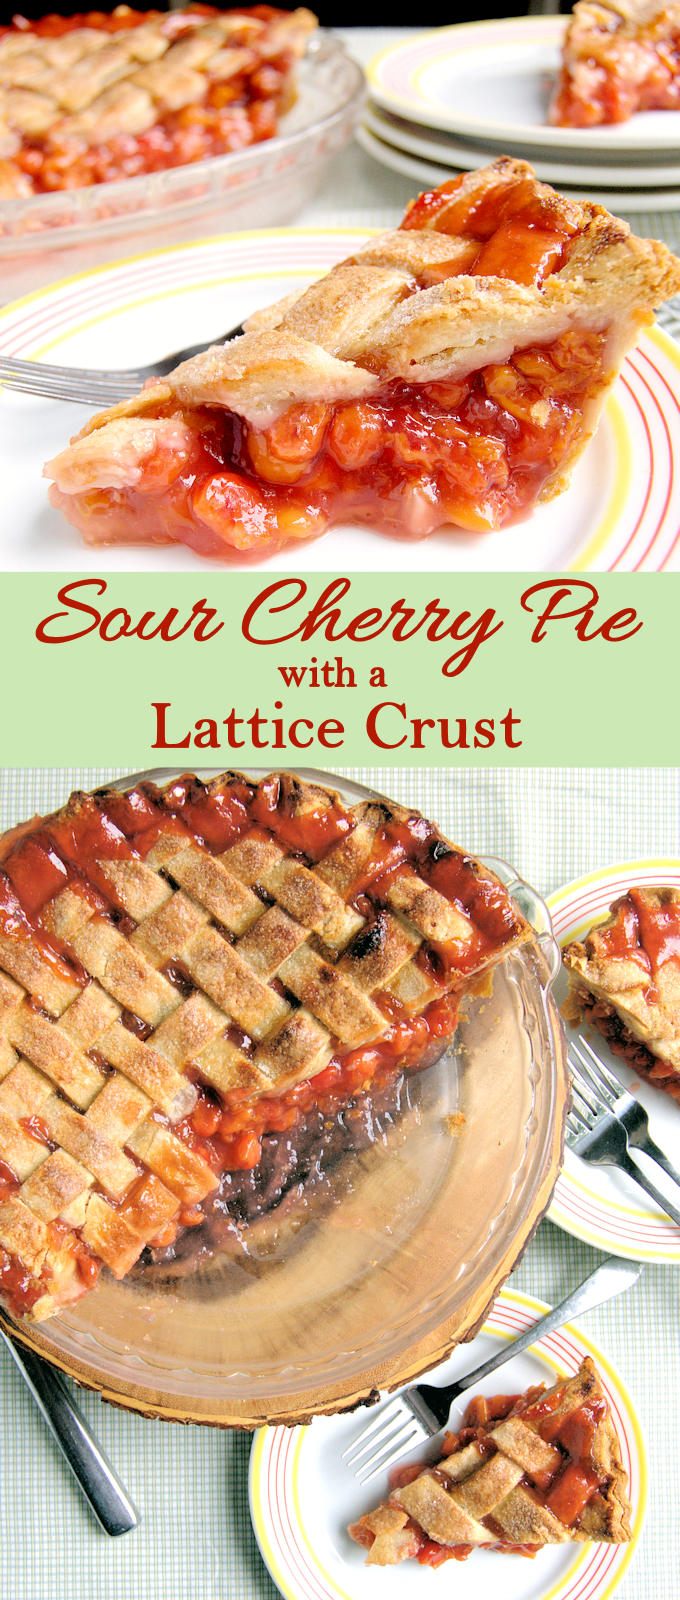 The perfect all American sour cherry pie! With video - how to create a lattice crust.